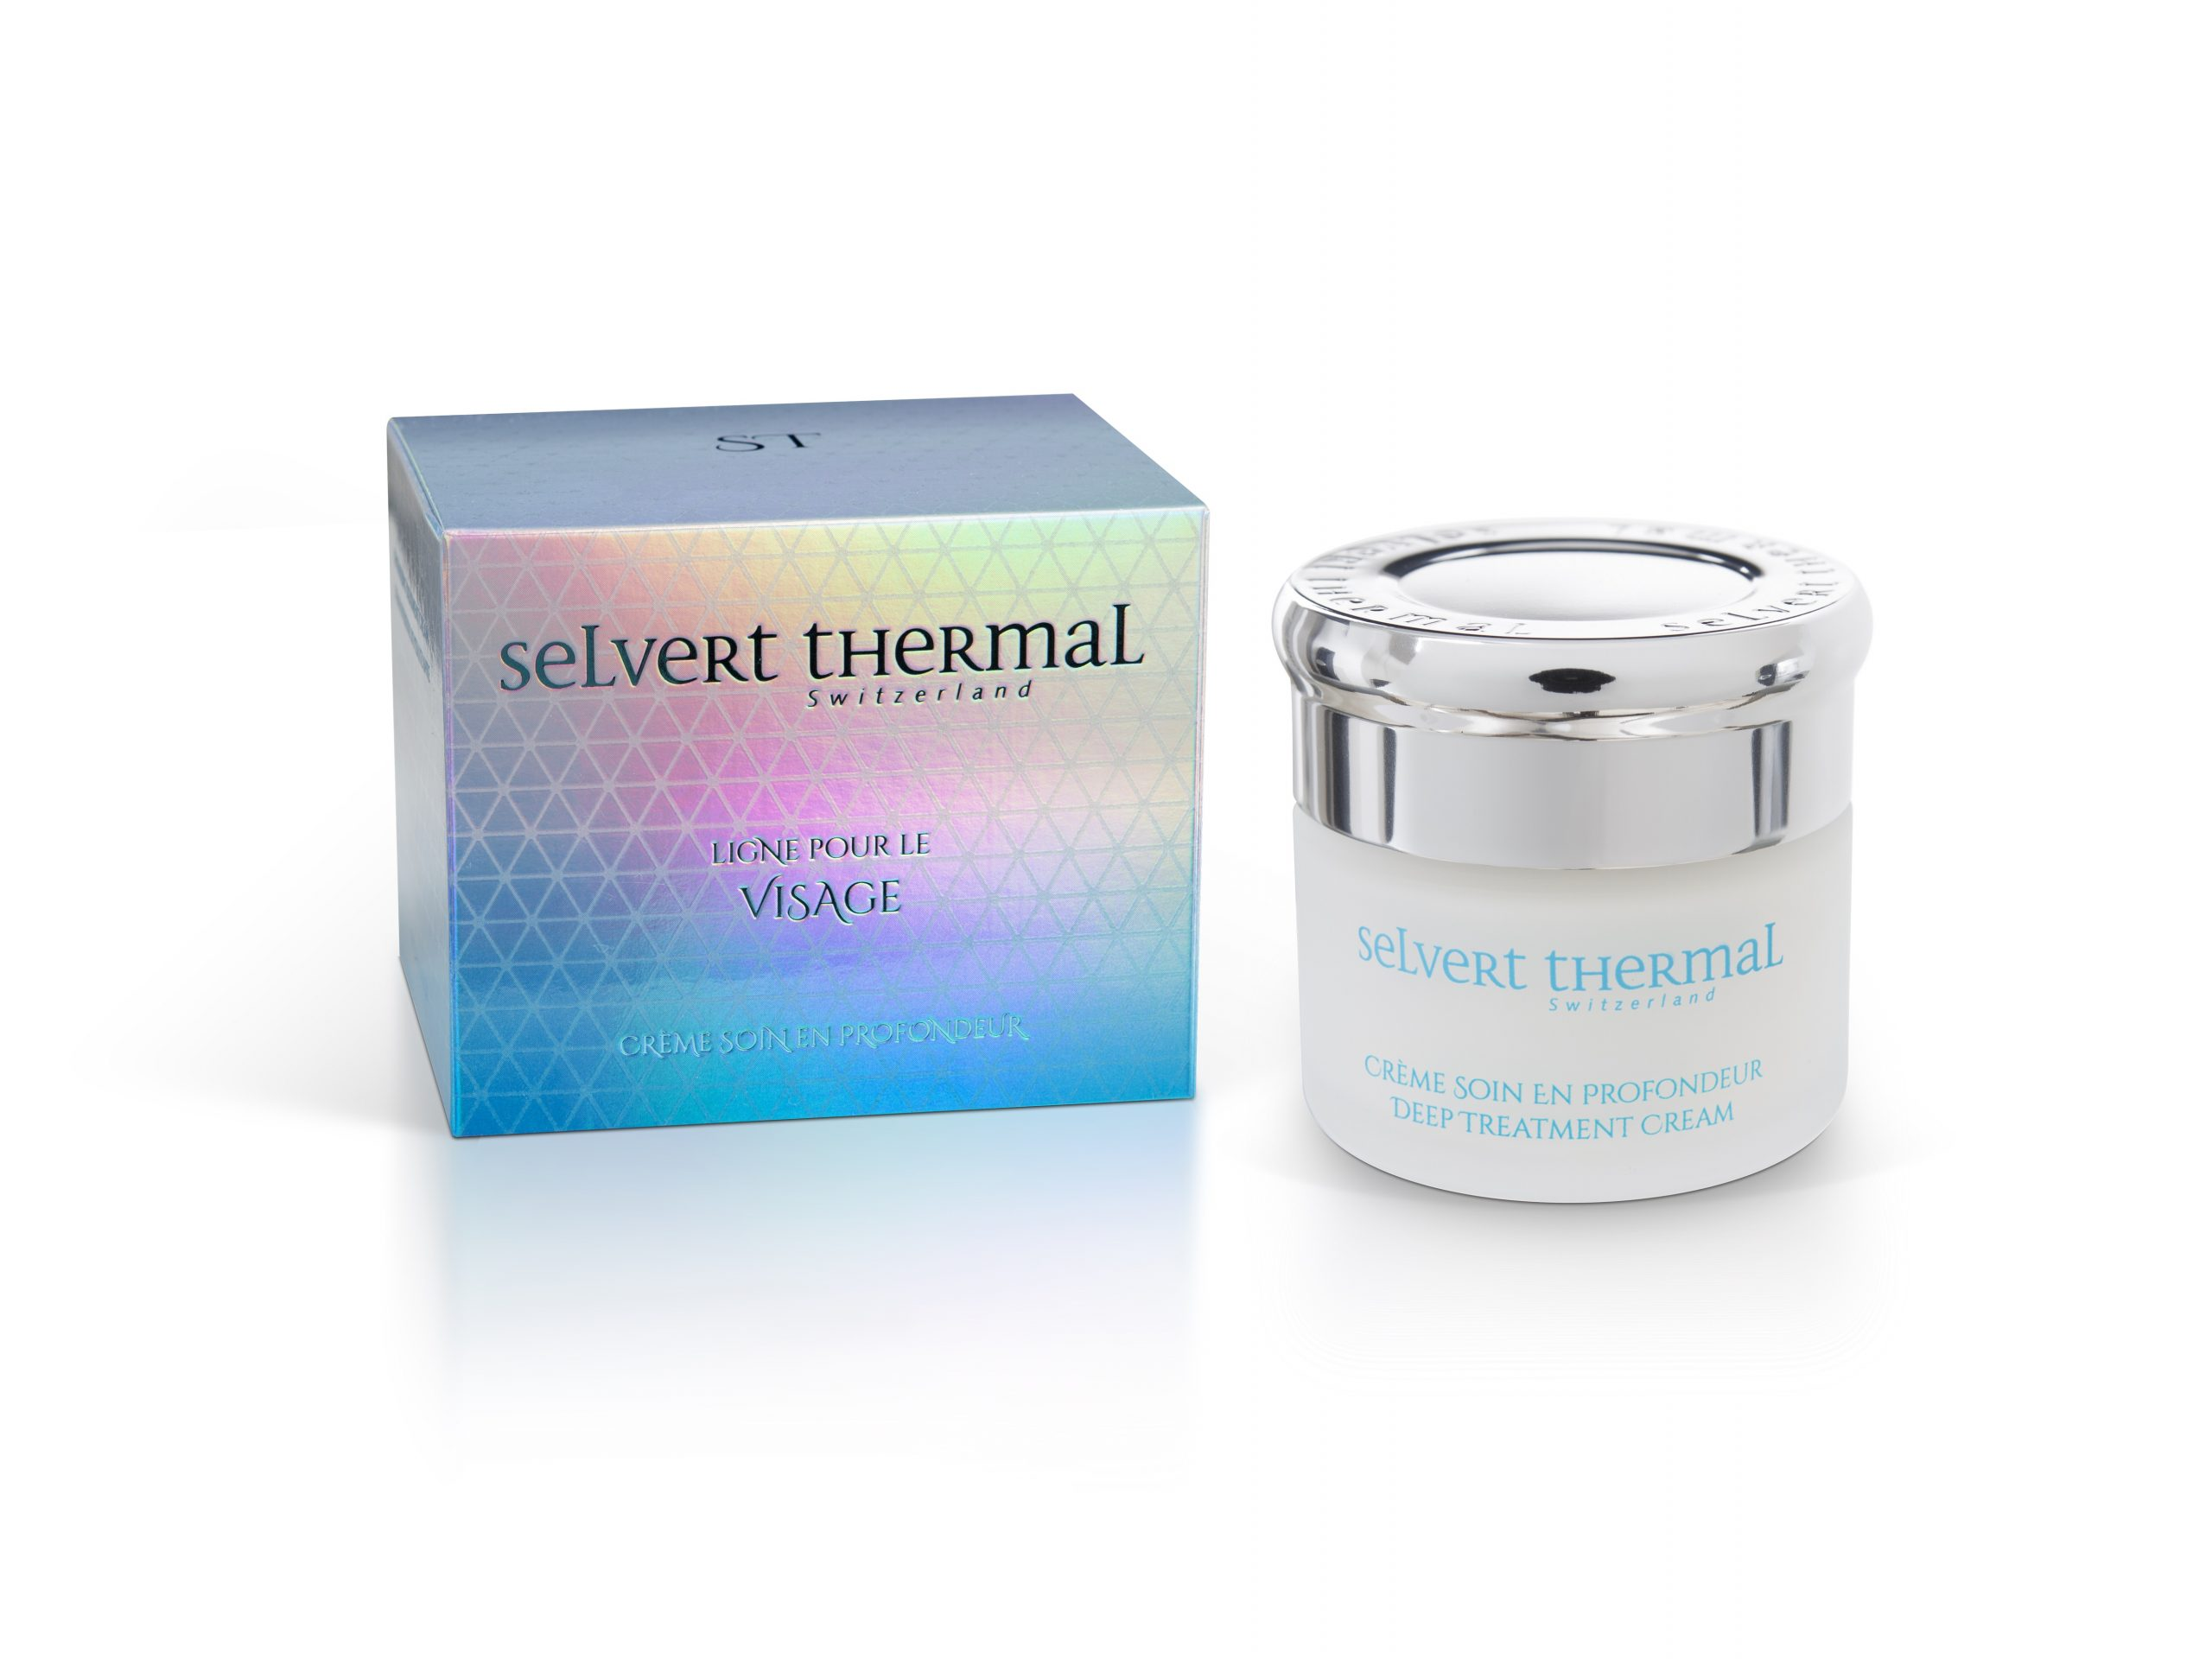 DEEP TREATMENT CREAM, Selvert Thermal Visage